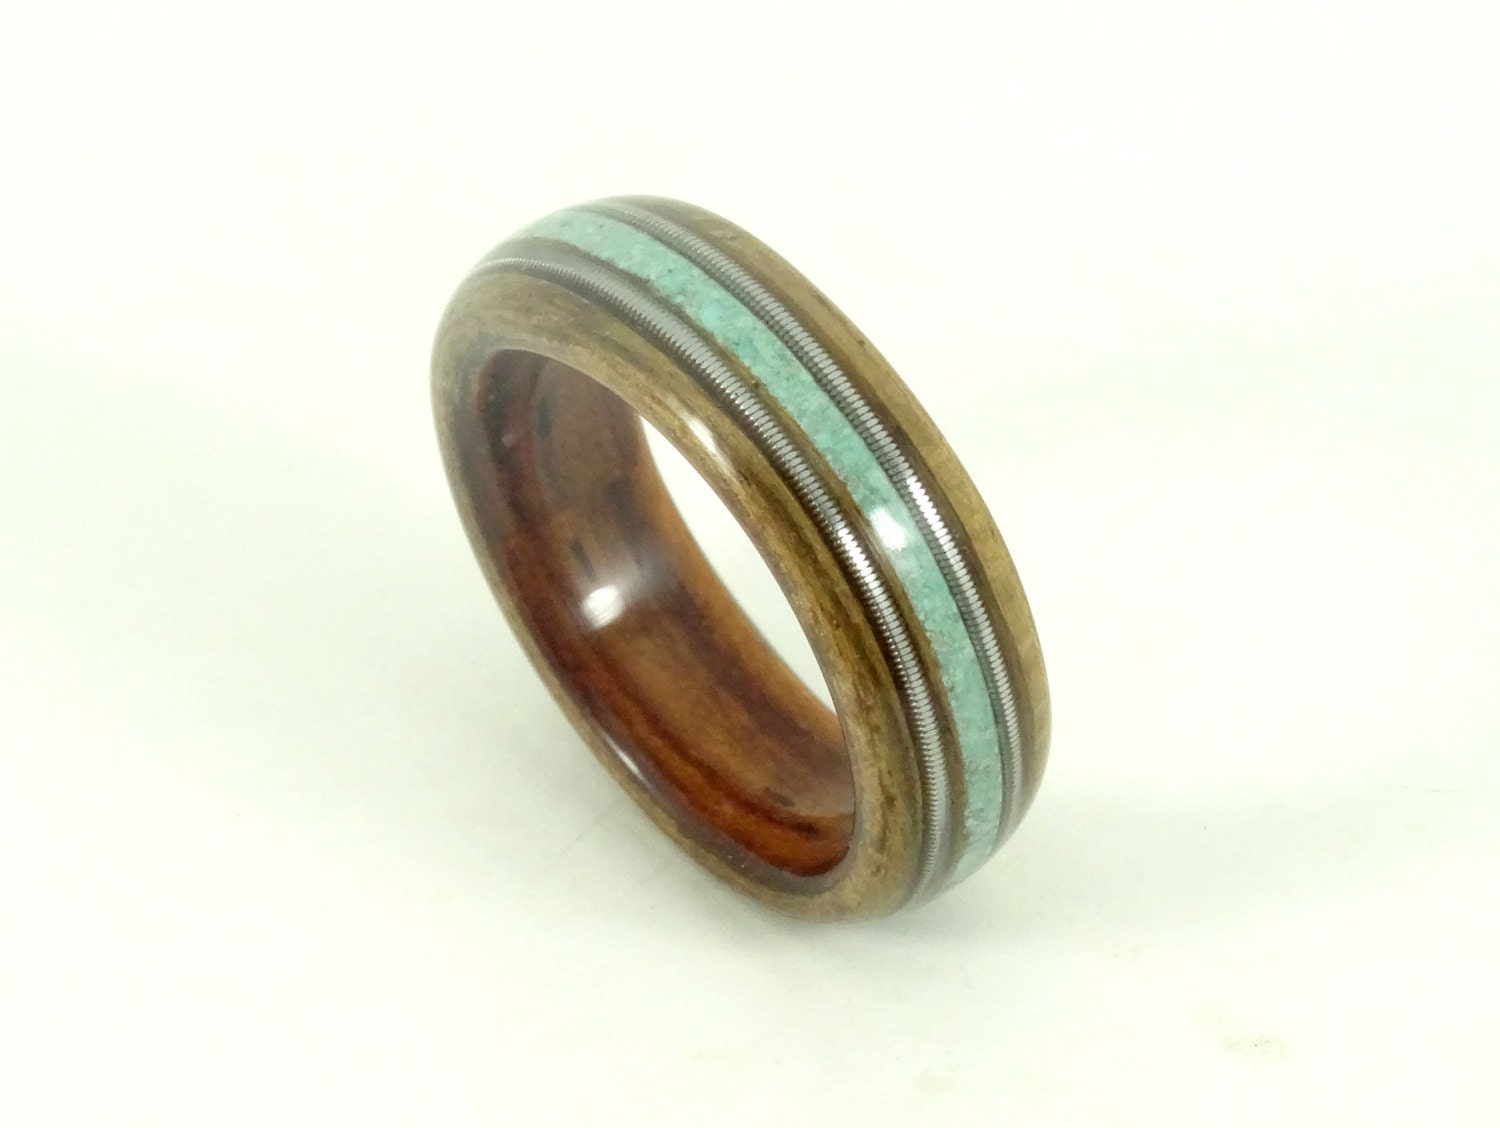 turquoise engagement ring turquoise wedding ring Wood Rings Wooden Rings Mens Wood Rings Wooden Wedding Rings Bent wood Rings Musician Gift Kingwood Olive Turquoise Guitar Strings